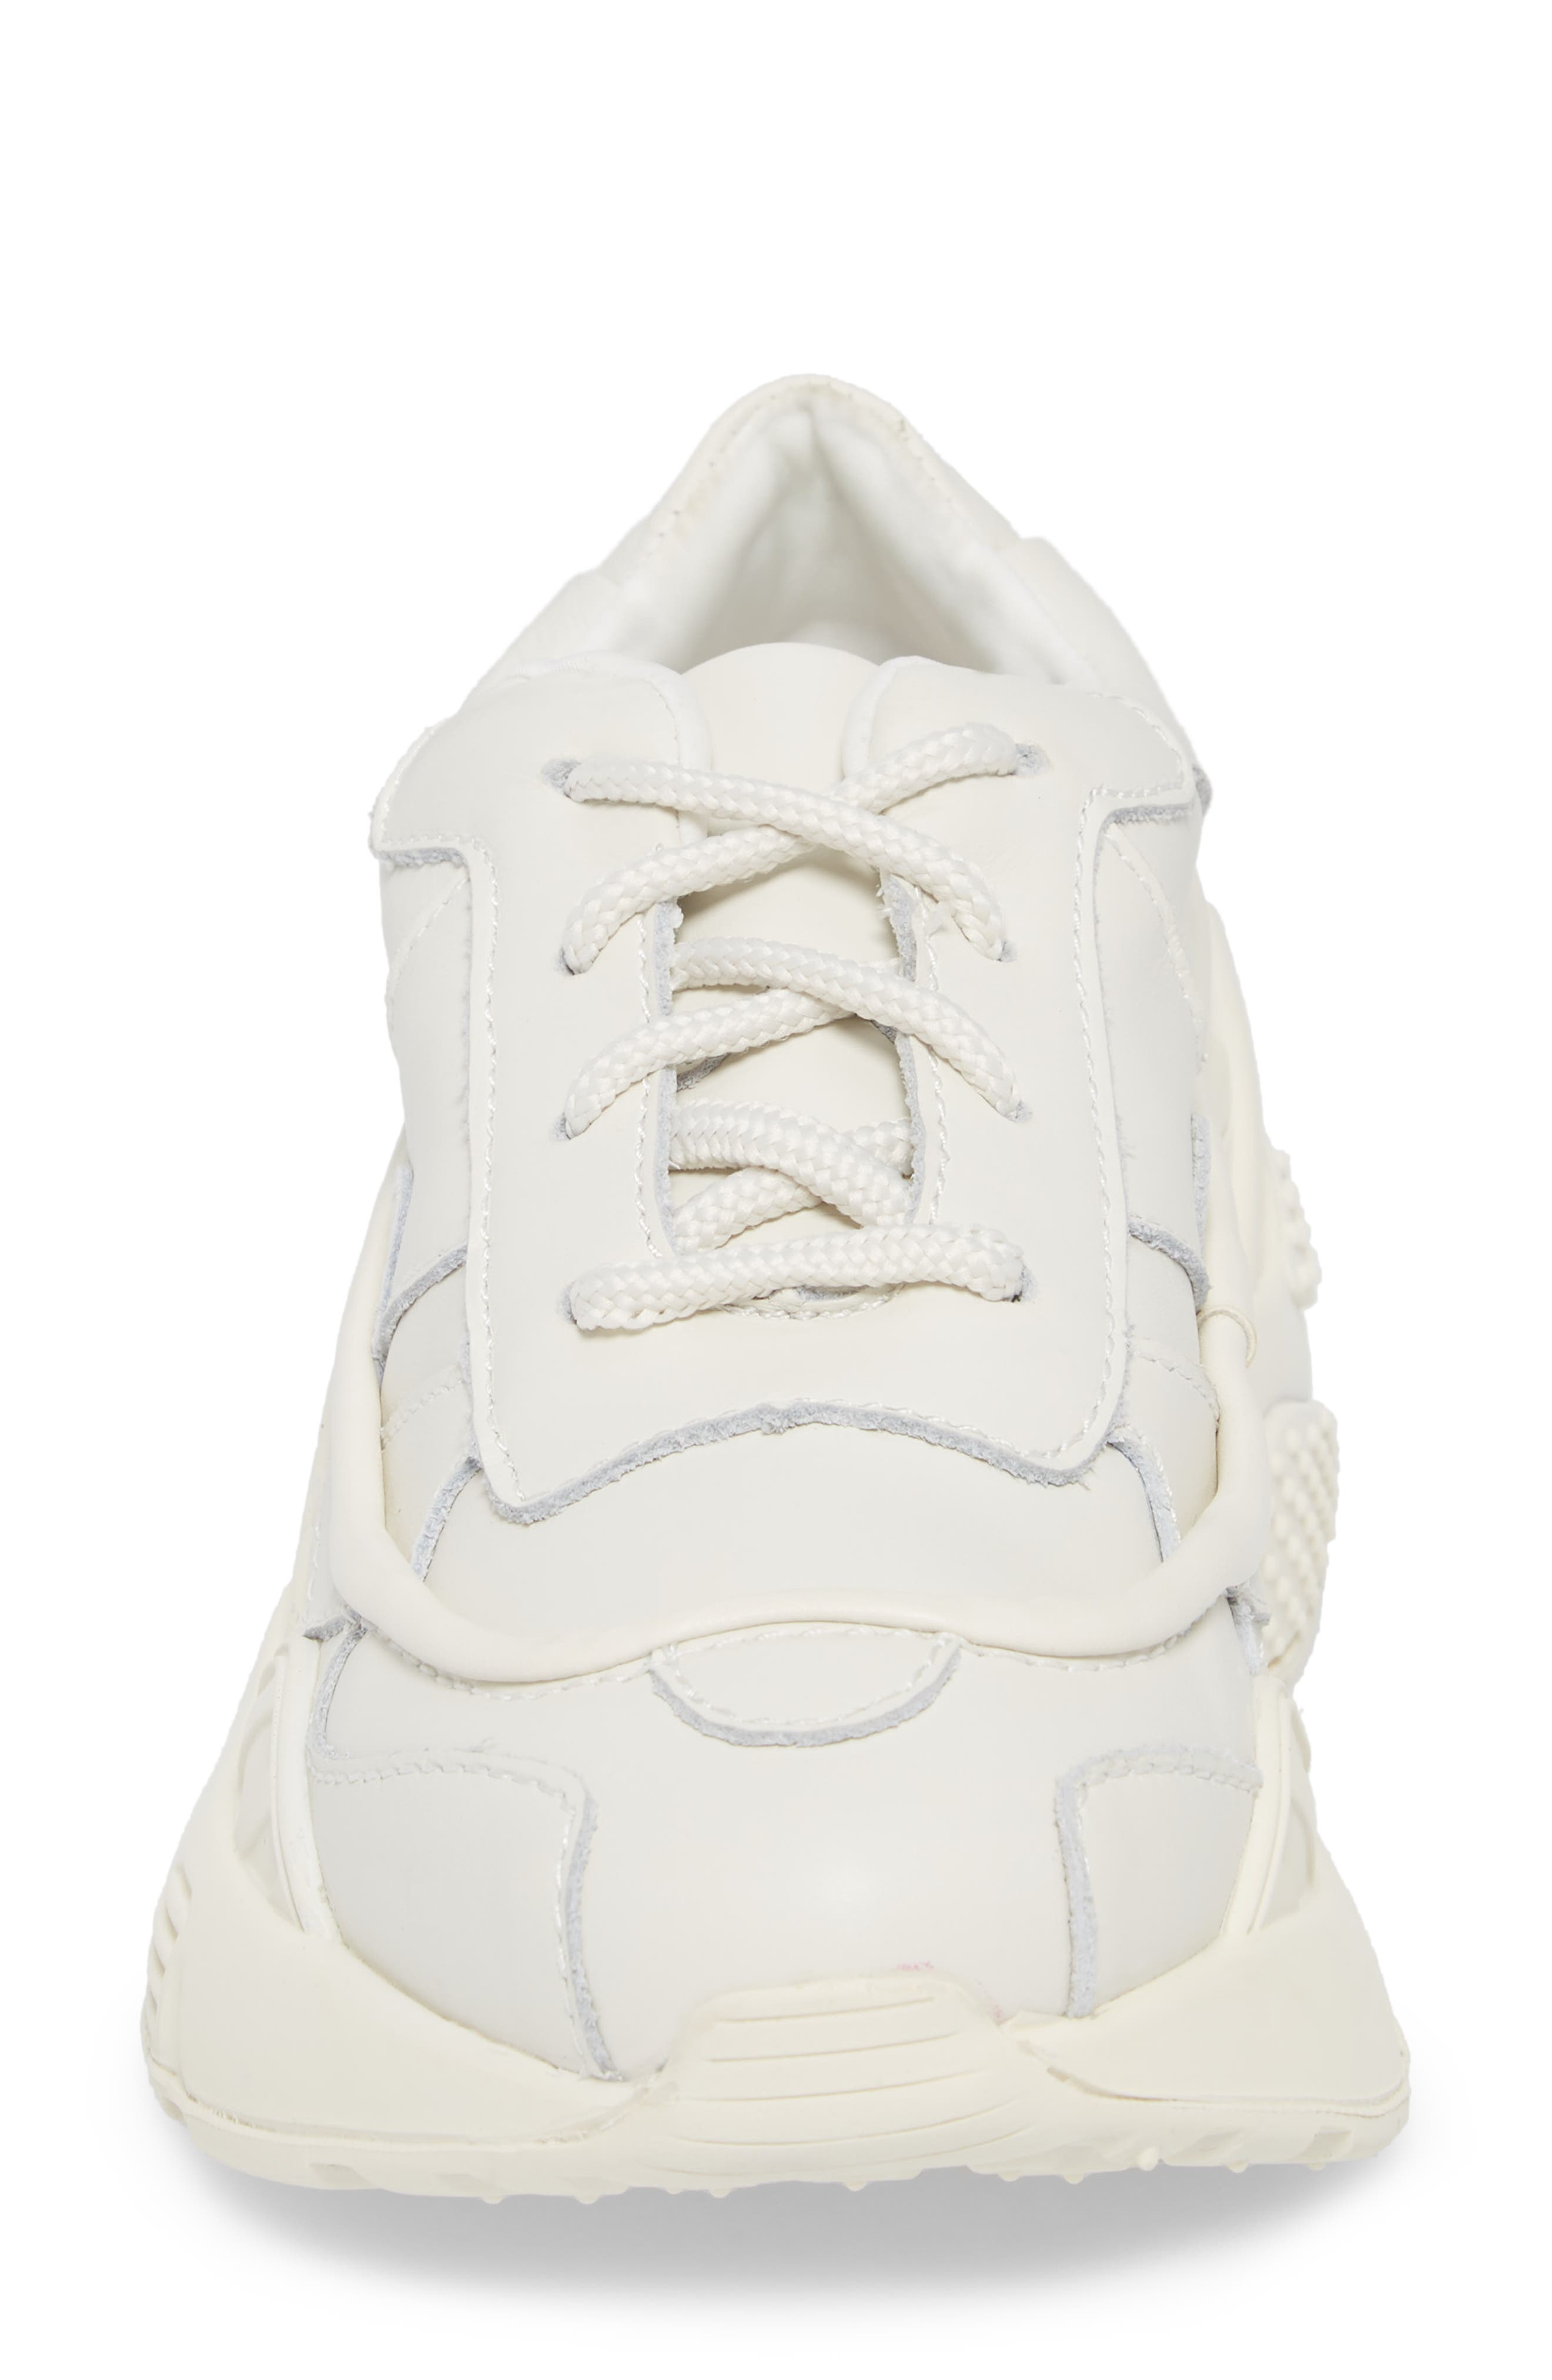 HMDI Platform Sneaker,                             Alternate thumbnail 4, color,                             WHITE LEATHER